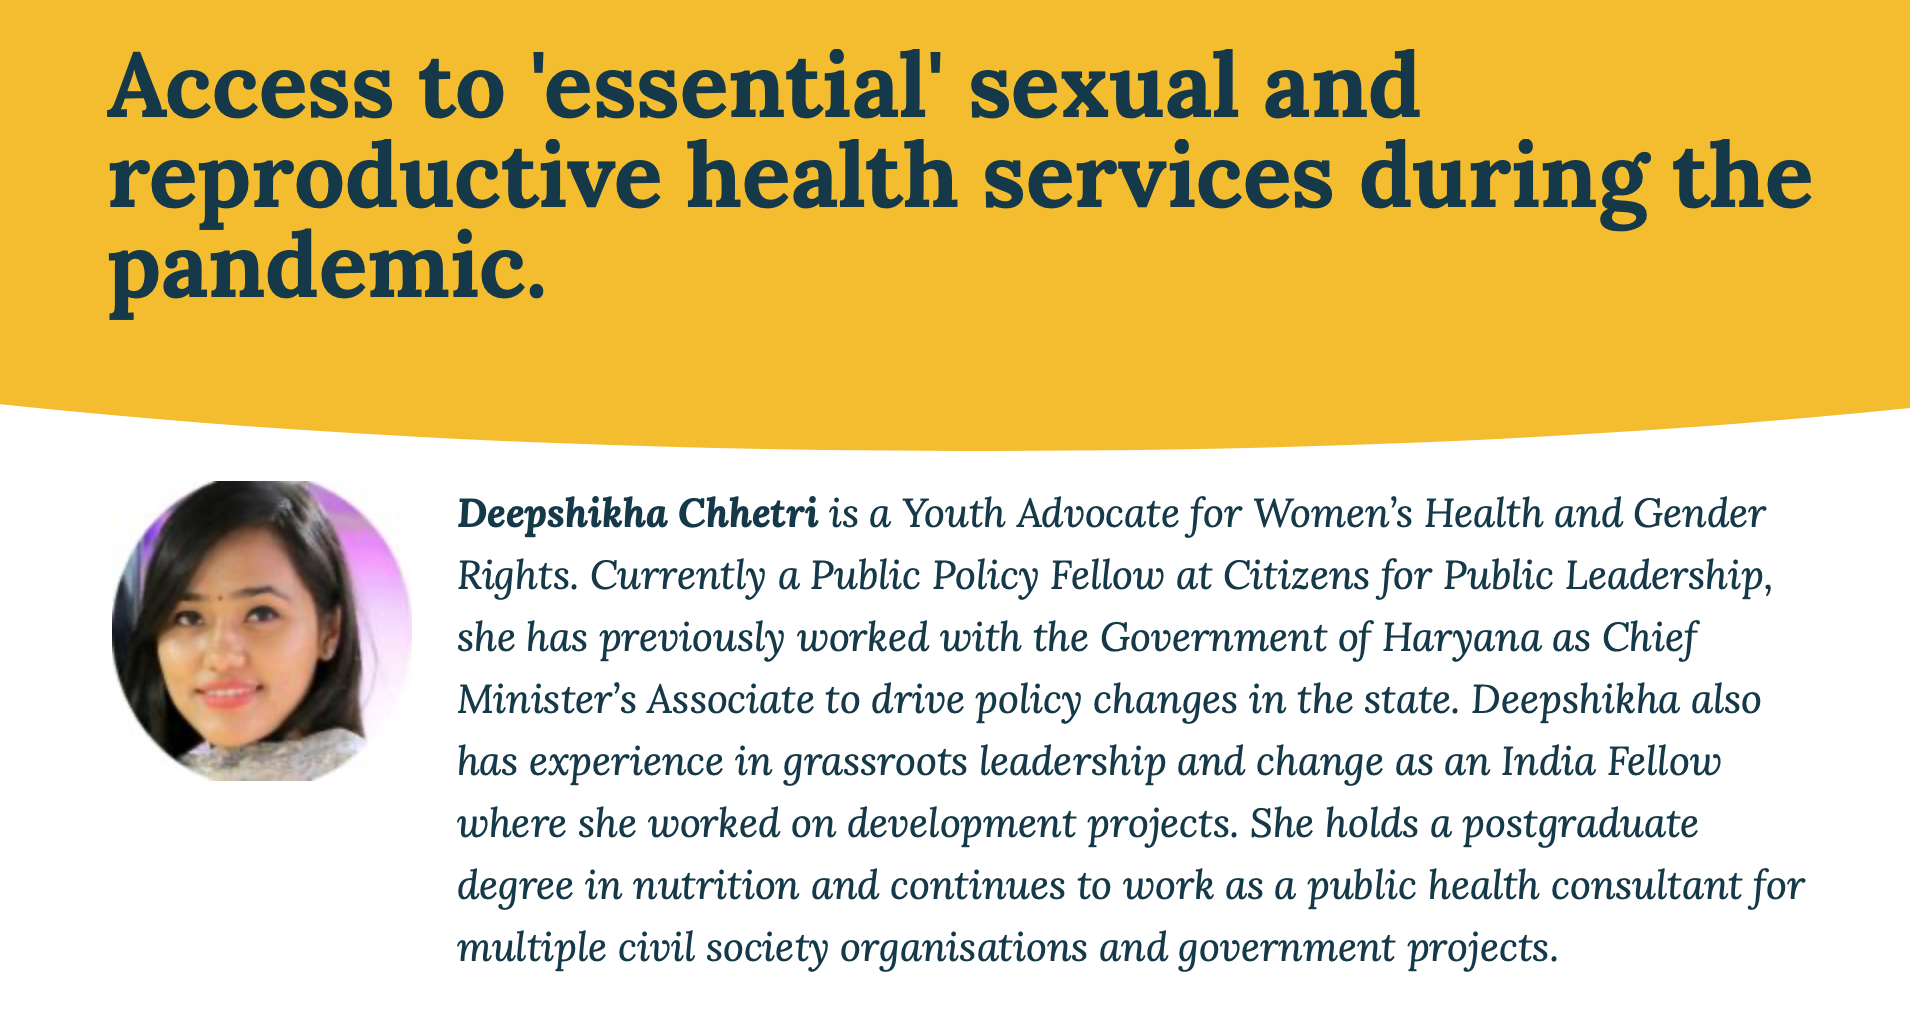 Access to essential sexual and reproductive health services during the pandemic